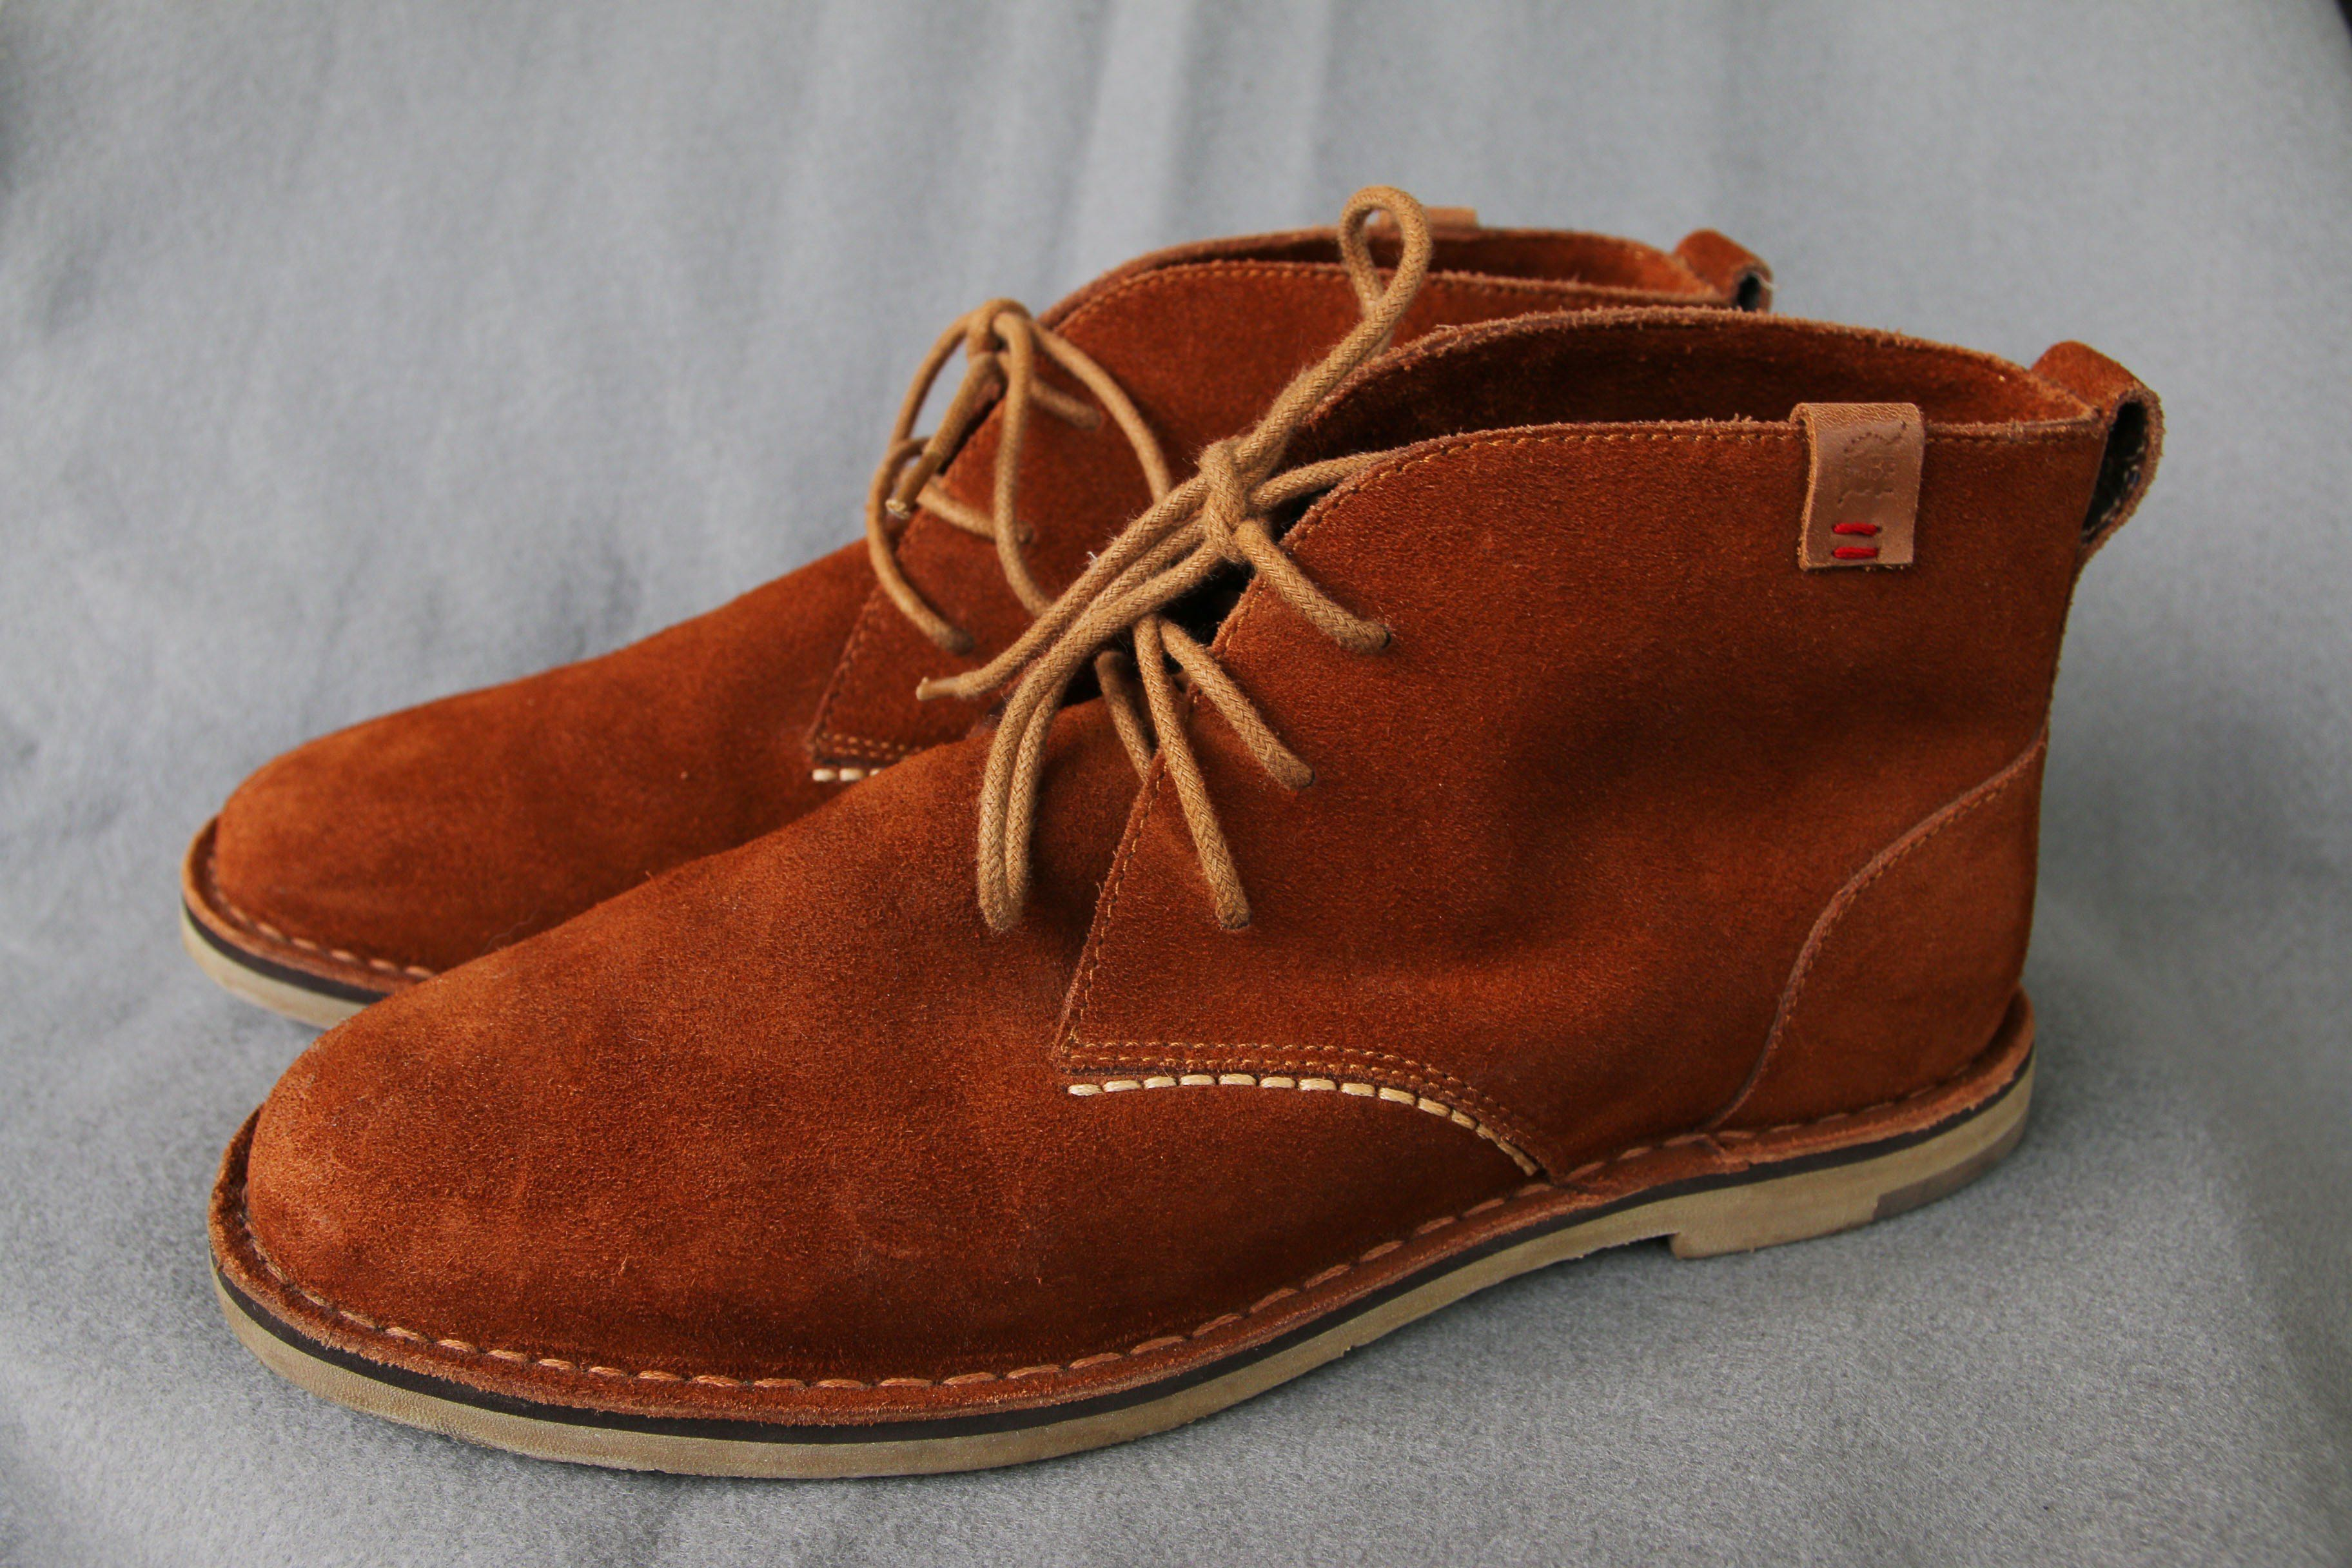 e1f66a0fba5 Jimmy Black Chukka Boots - Brown Suede